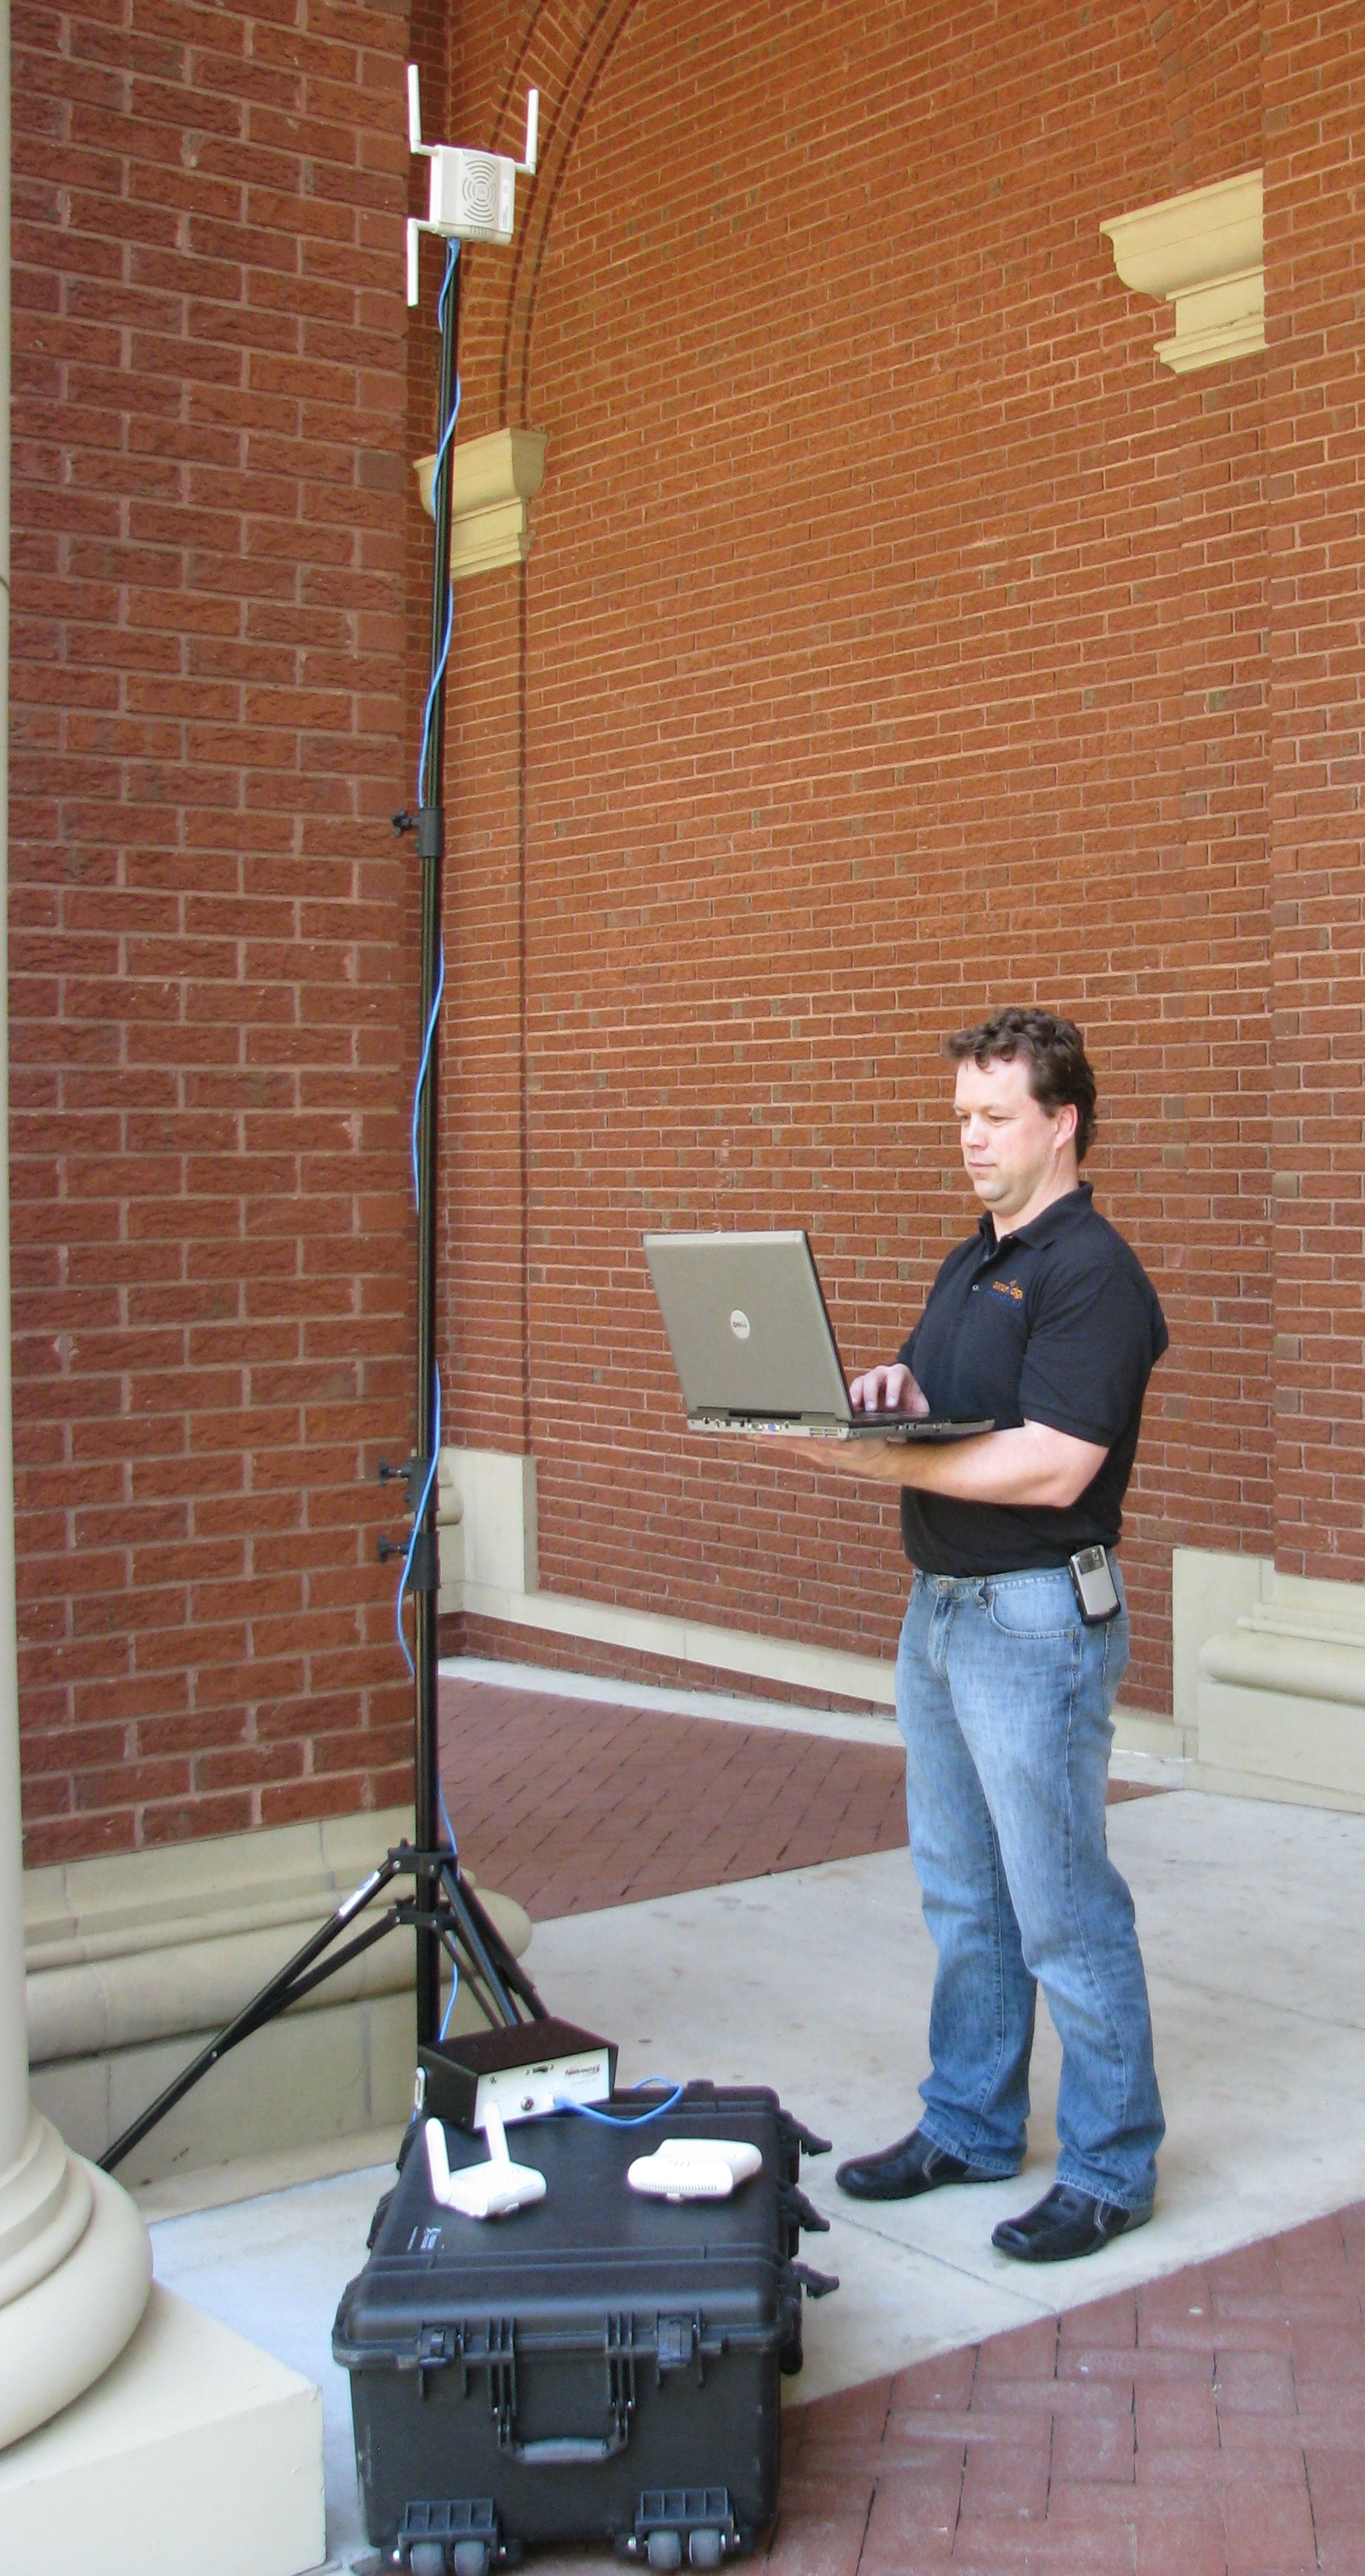 Wireless Design Guide for Schools: Top 5 Questions and Answers